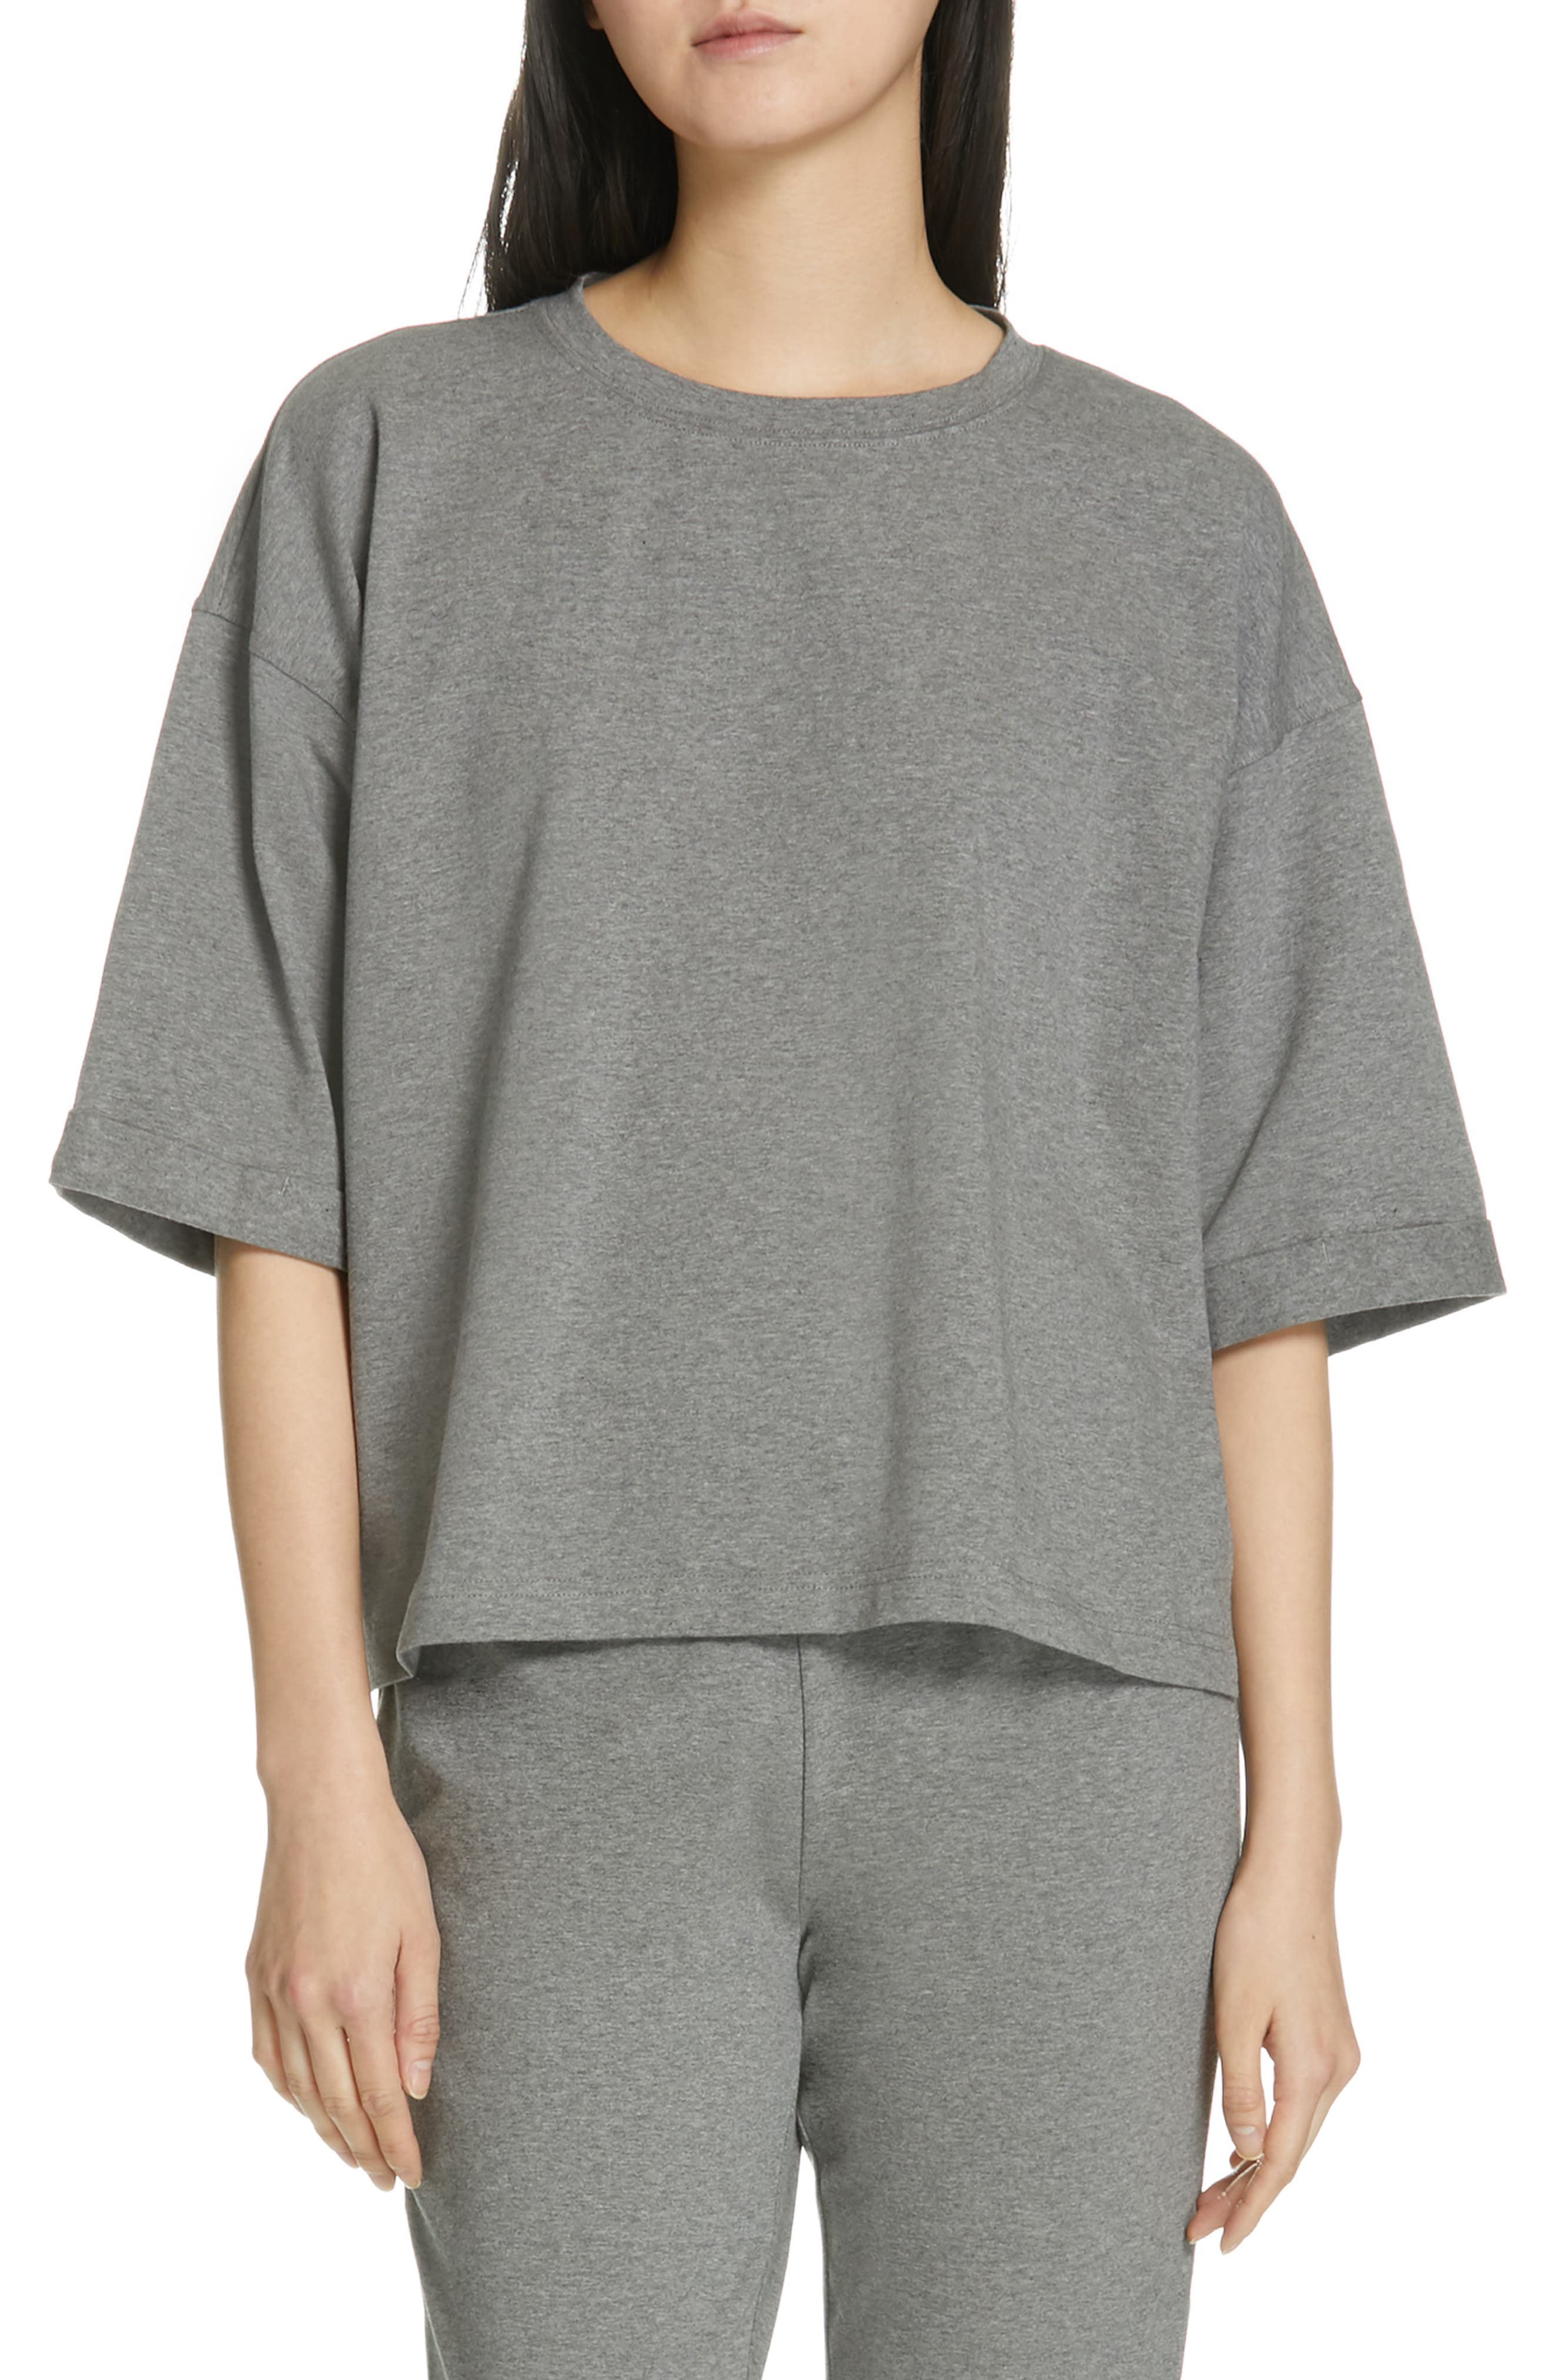 EILEEN FISHER, Stretch Organic Cotton Top, Main thumbnail 1, color, MOON